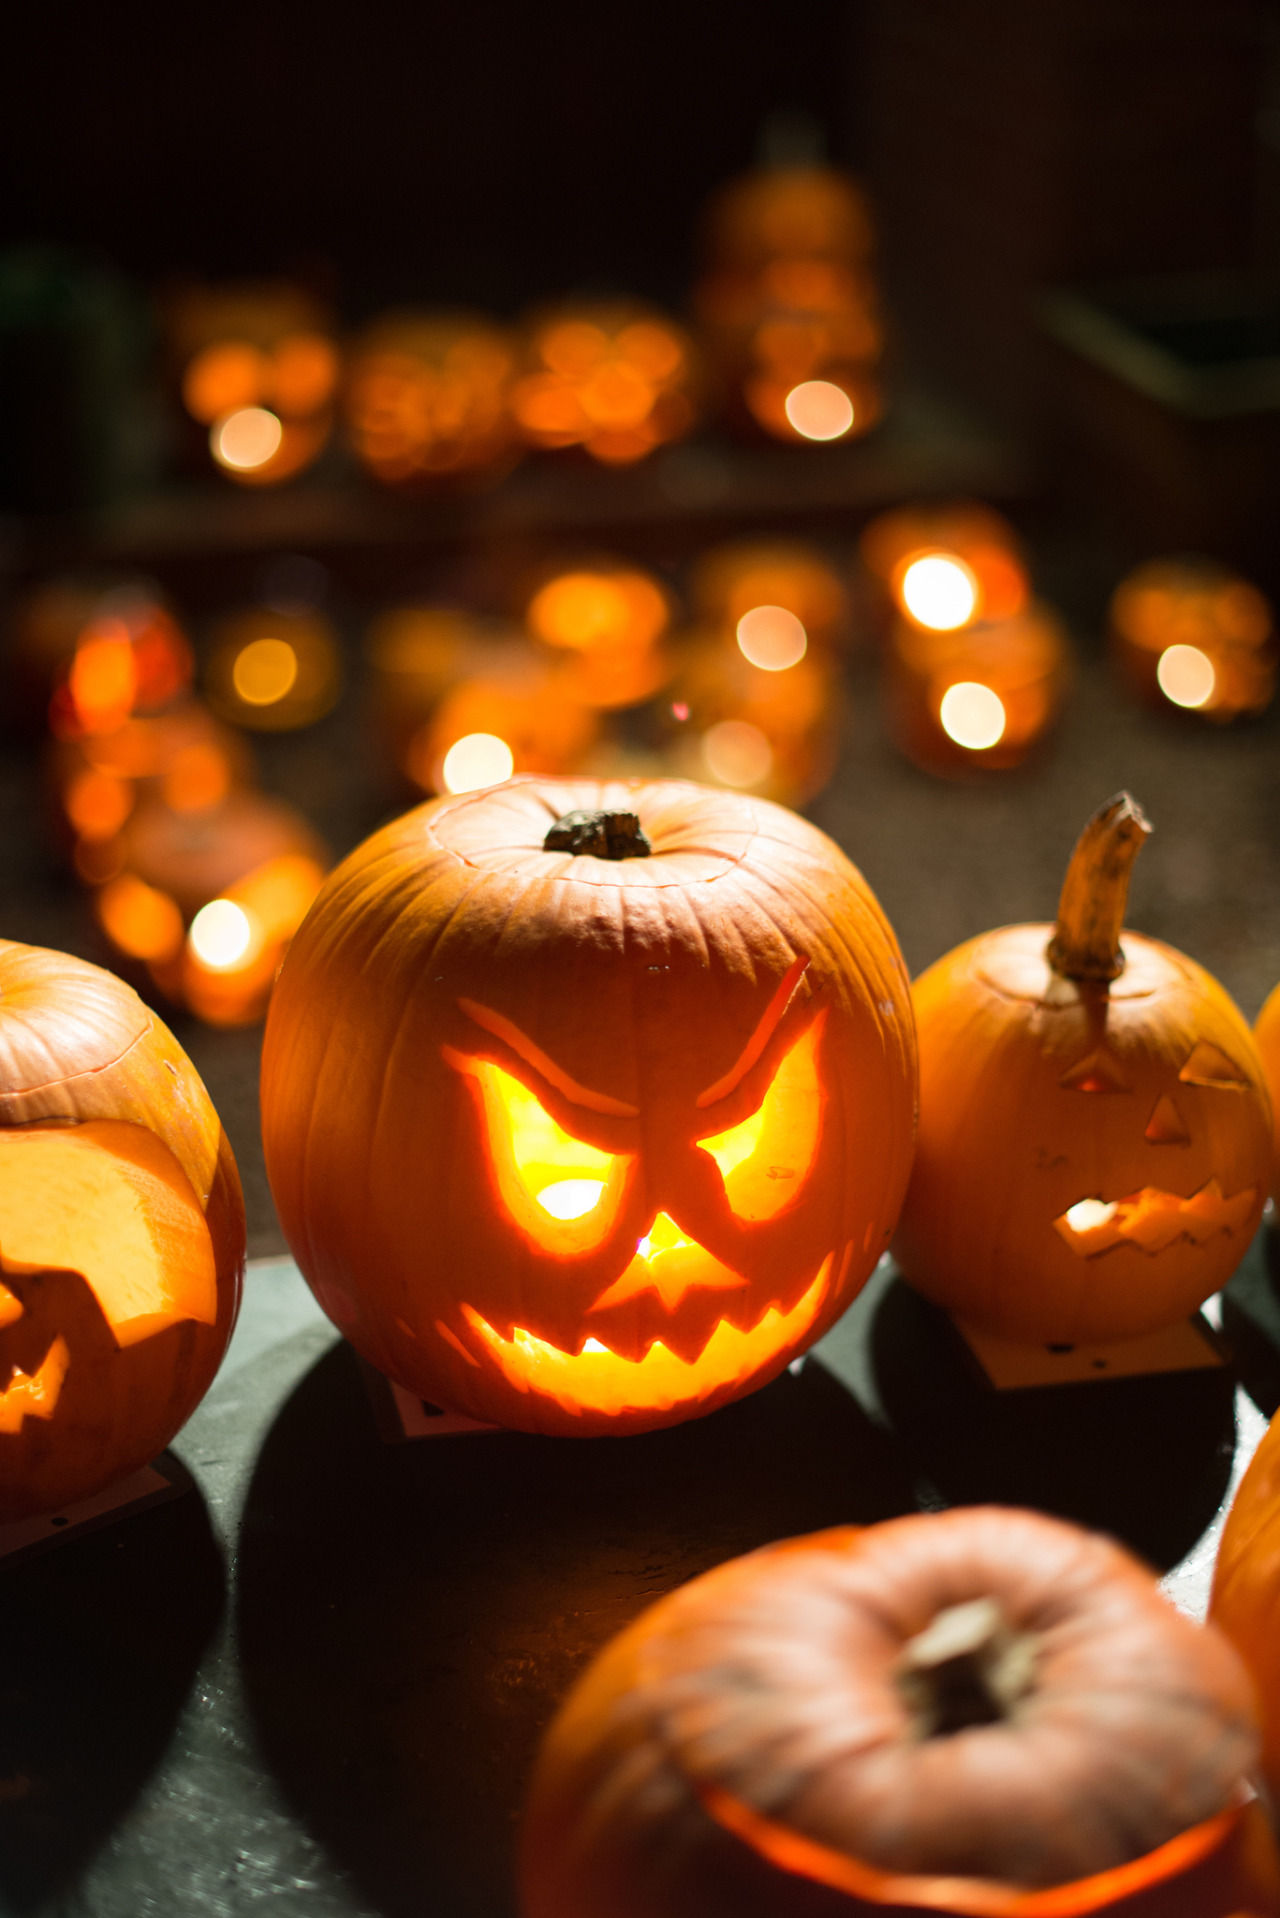 Pumpkin Jack O Lanterns Pictures, Photos, and Images for ...